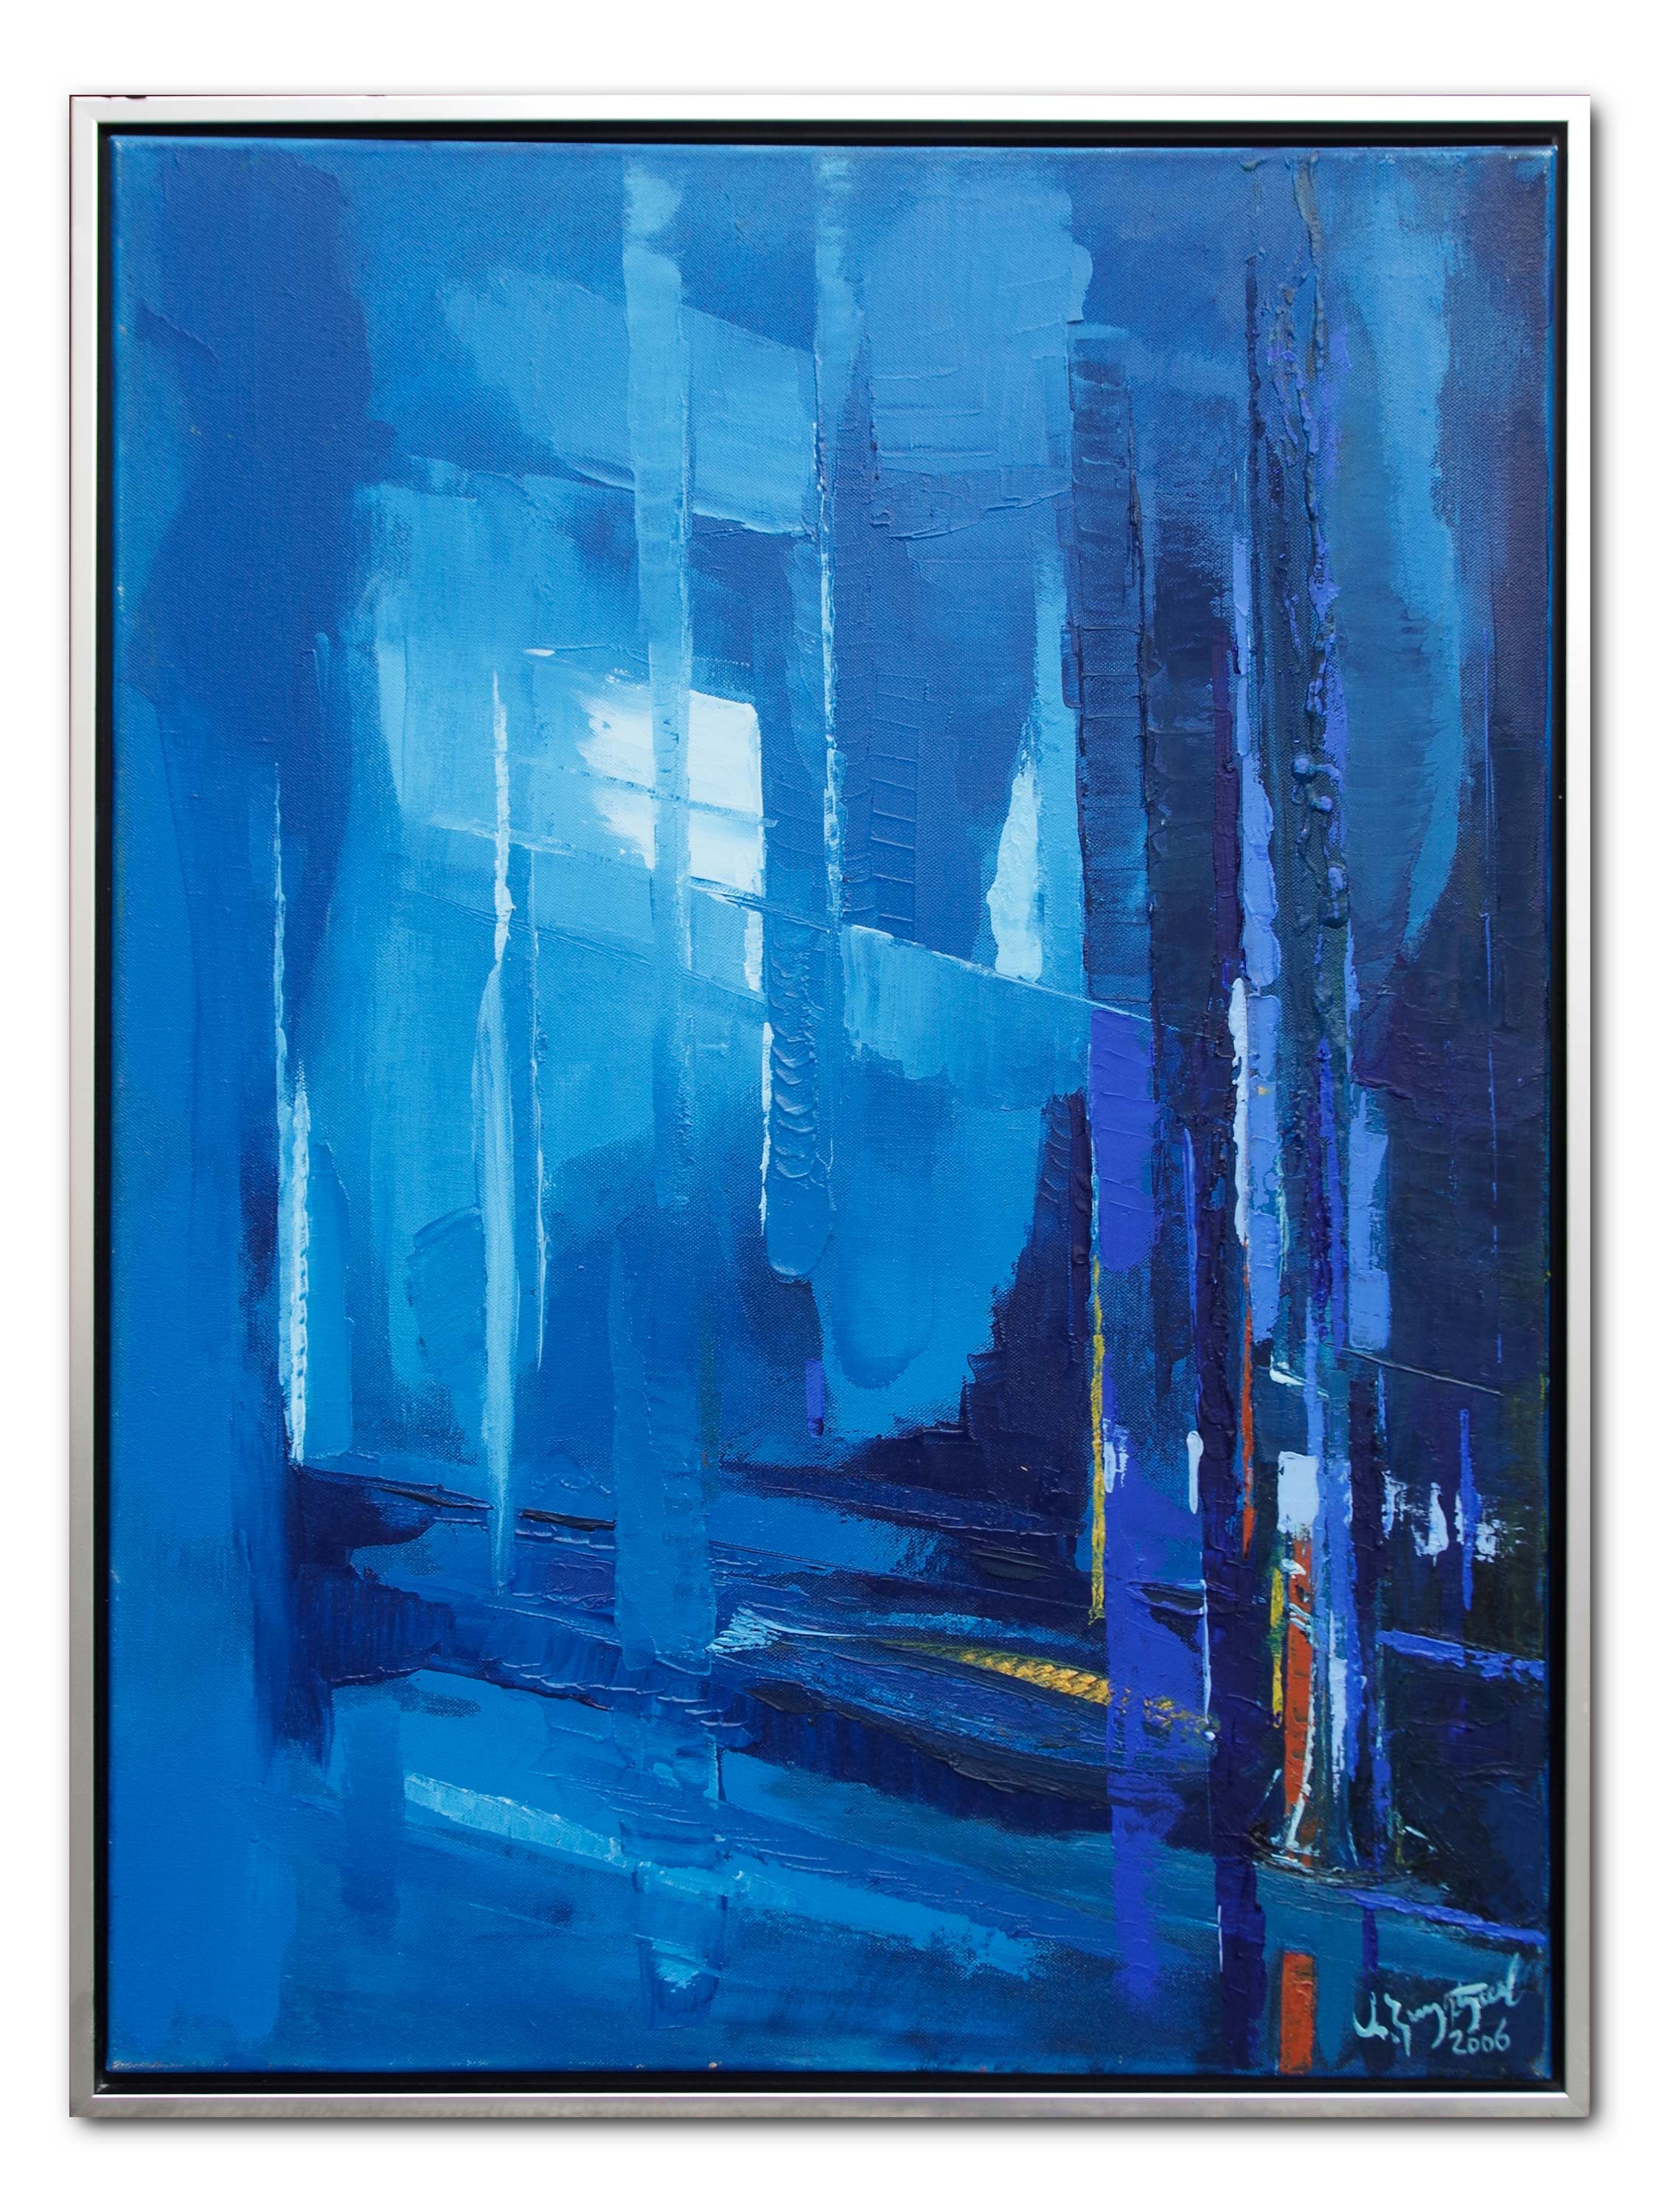 Rhapsudy in Blue. 2006. 60 x 80 cm%